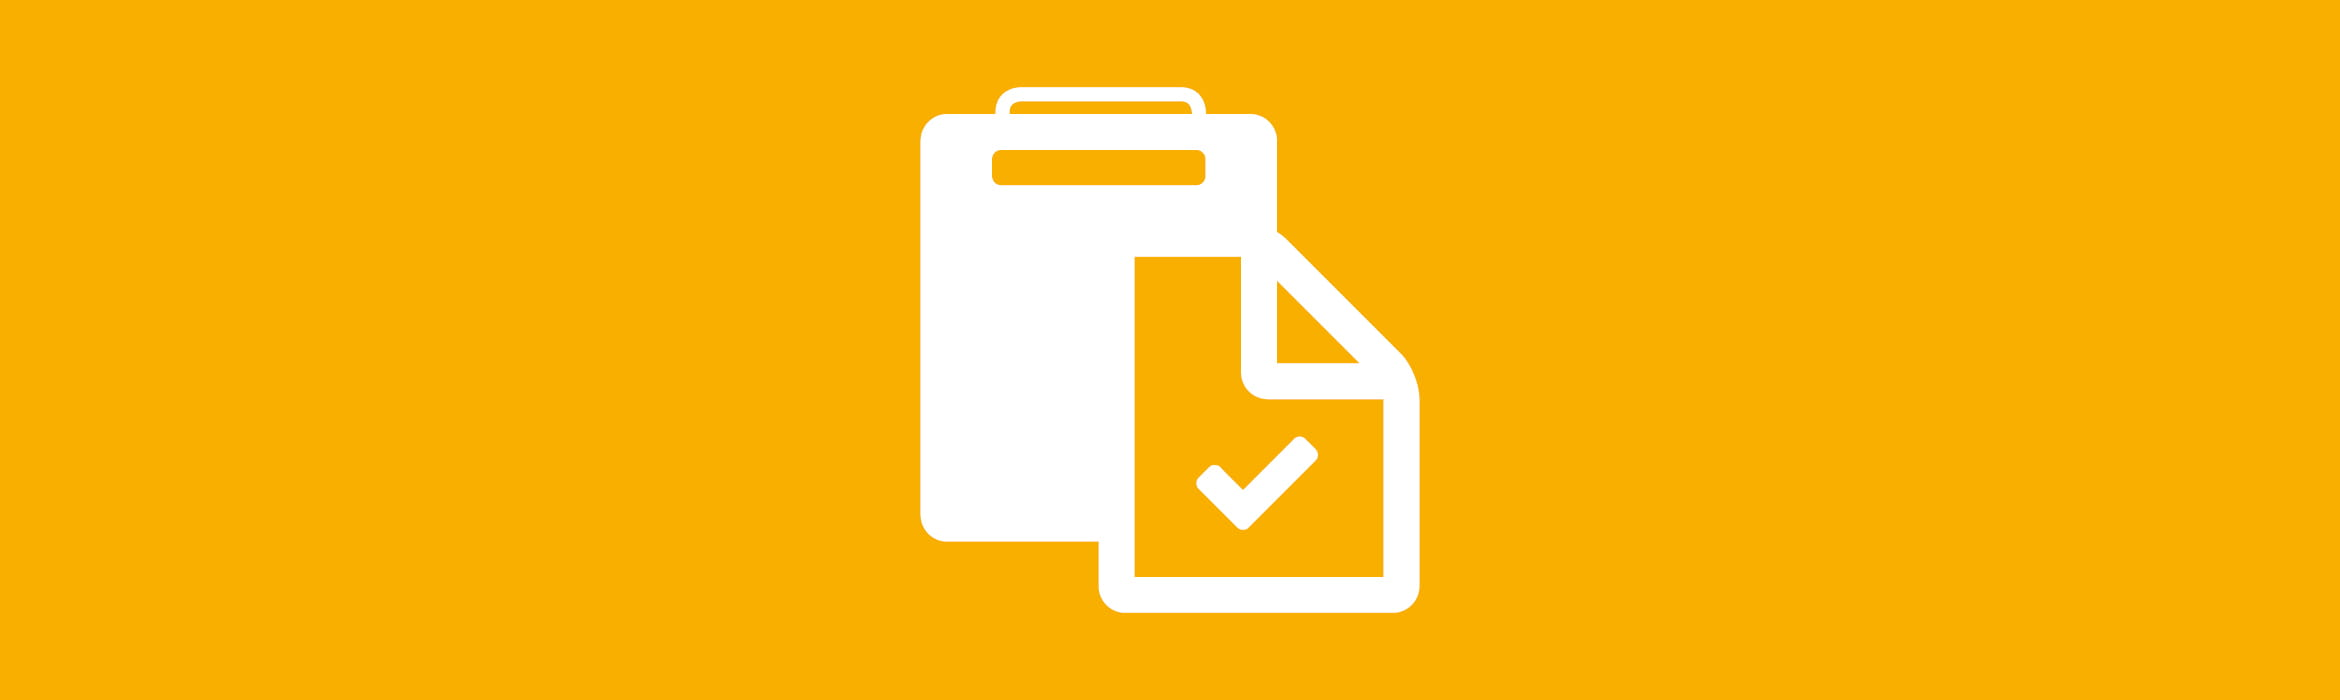 white clipboard icon against an amber background